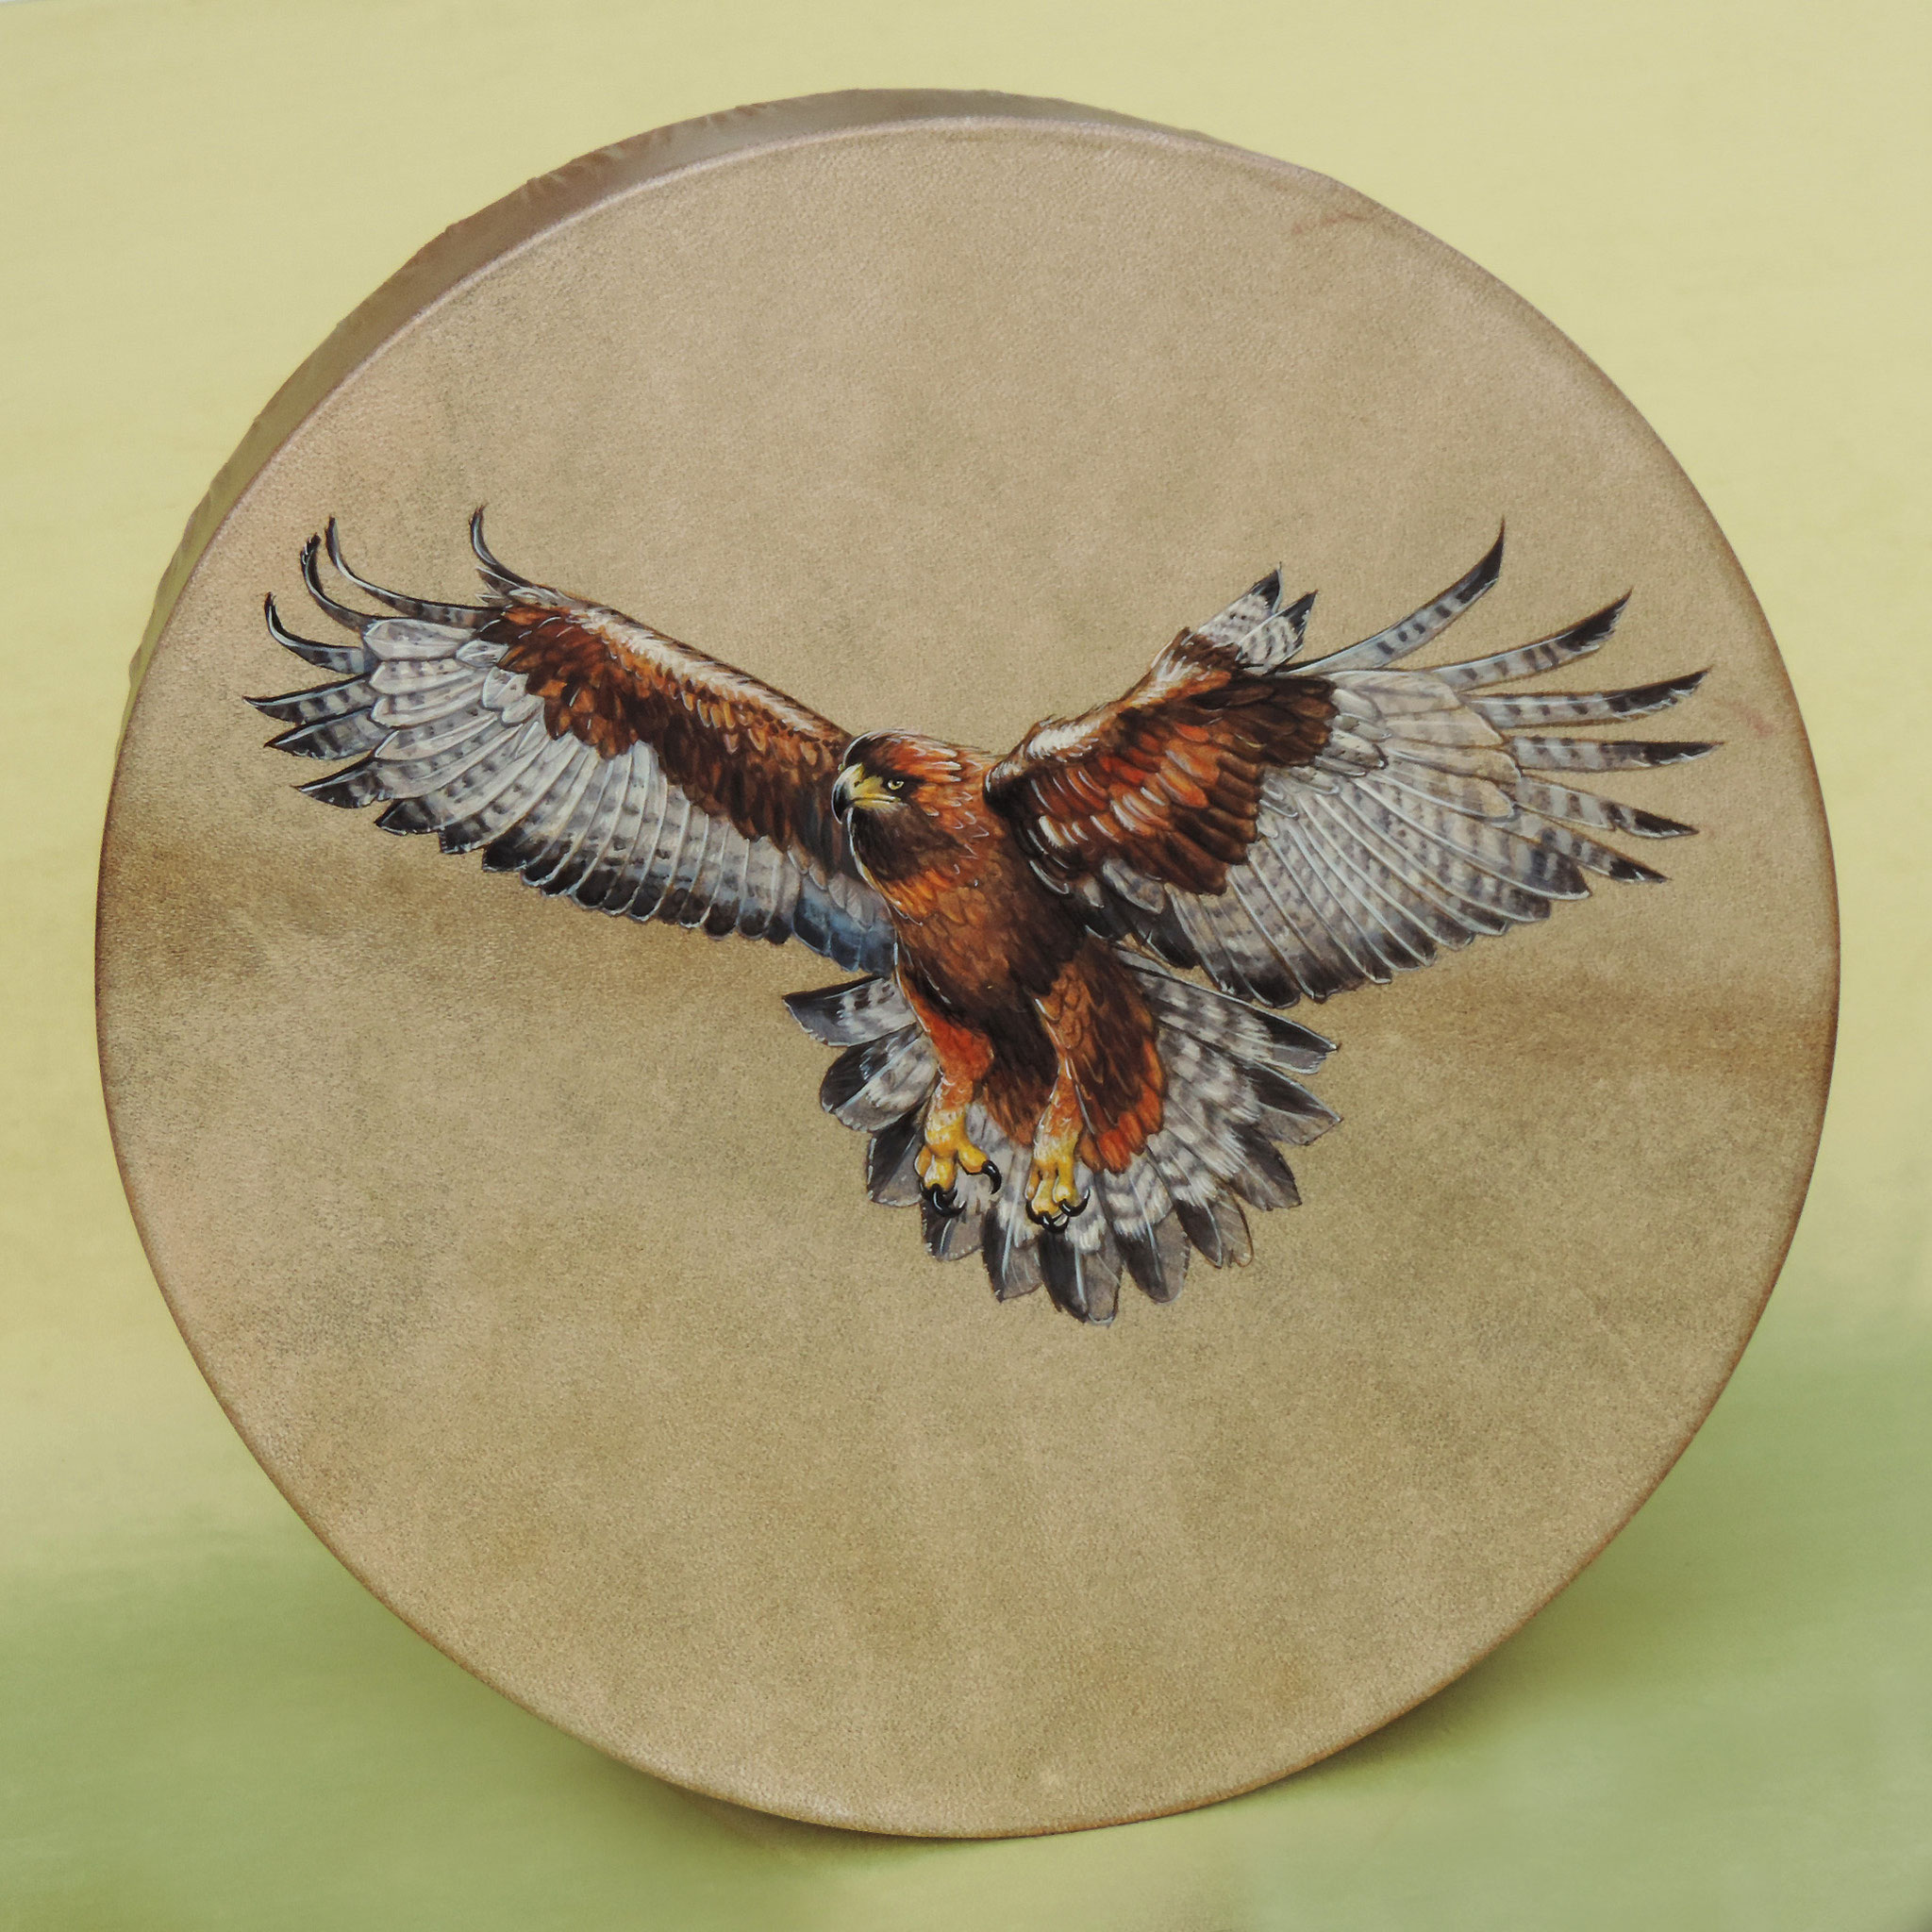 40 cm drum hand-painted with eagle